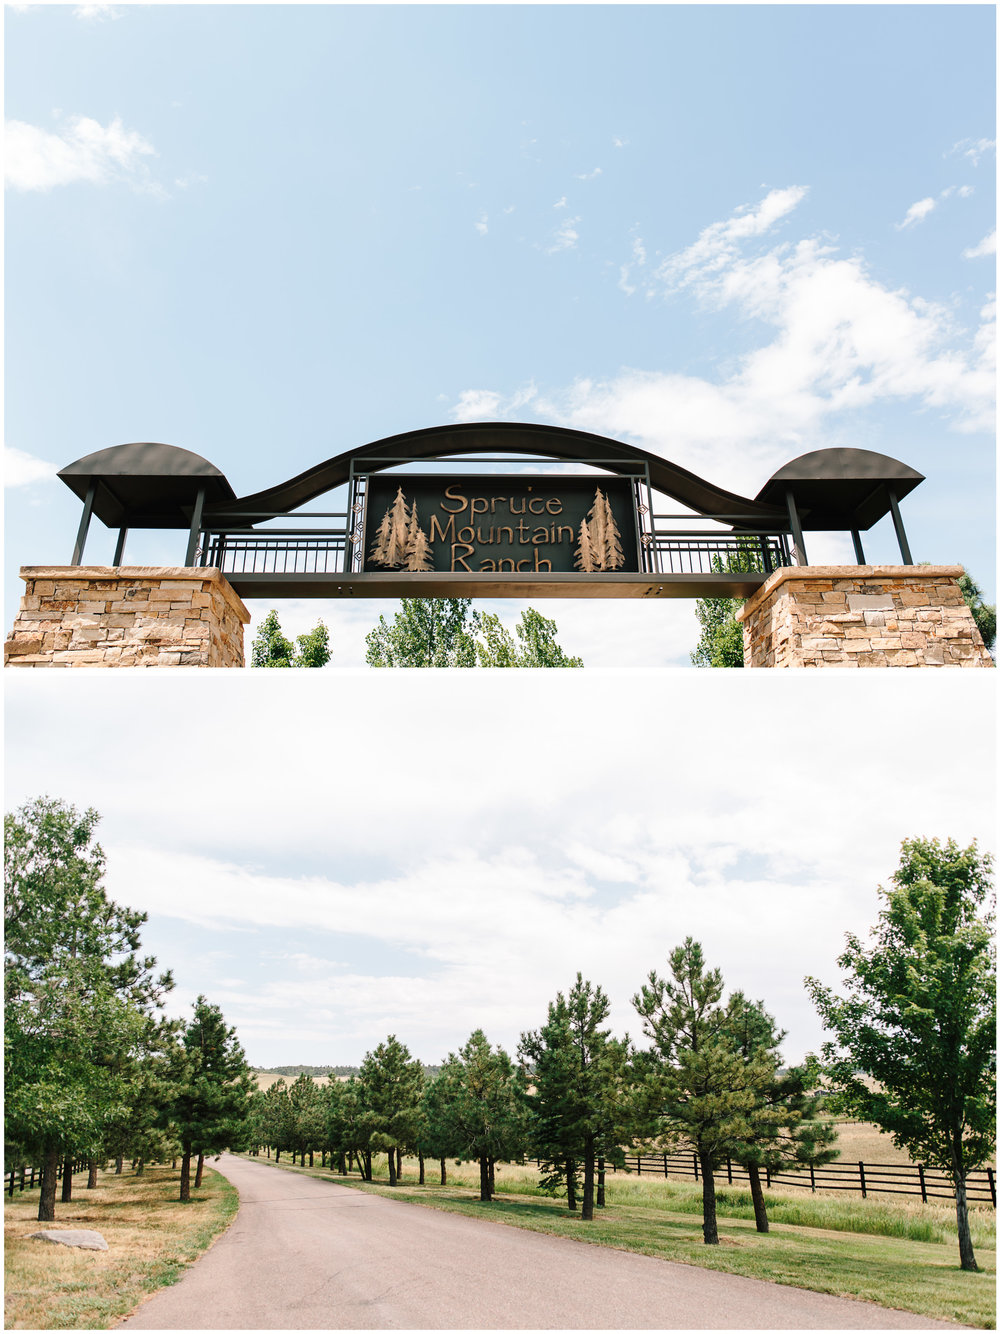 Spruce_Mountain_Ranch_Wedding_.jpg